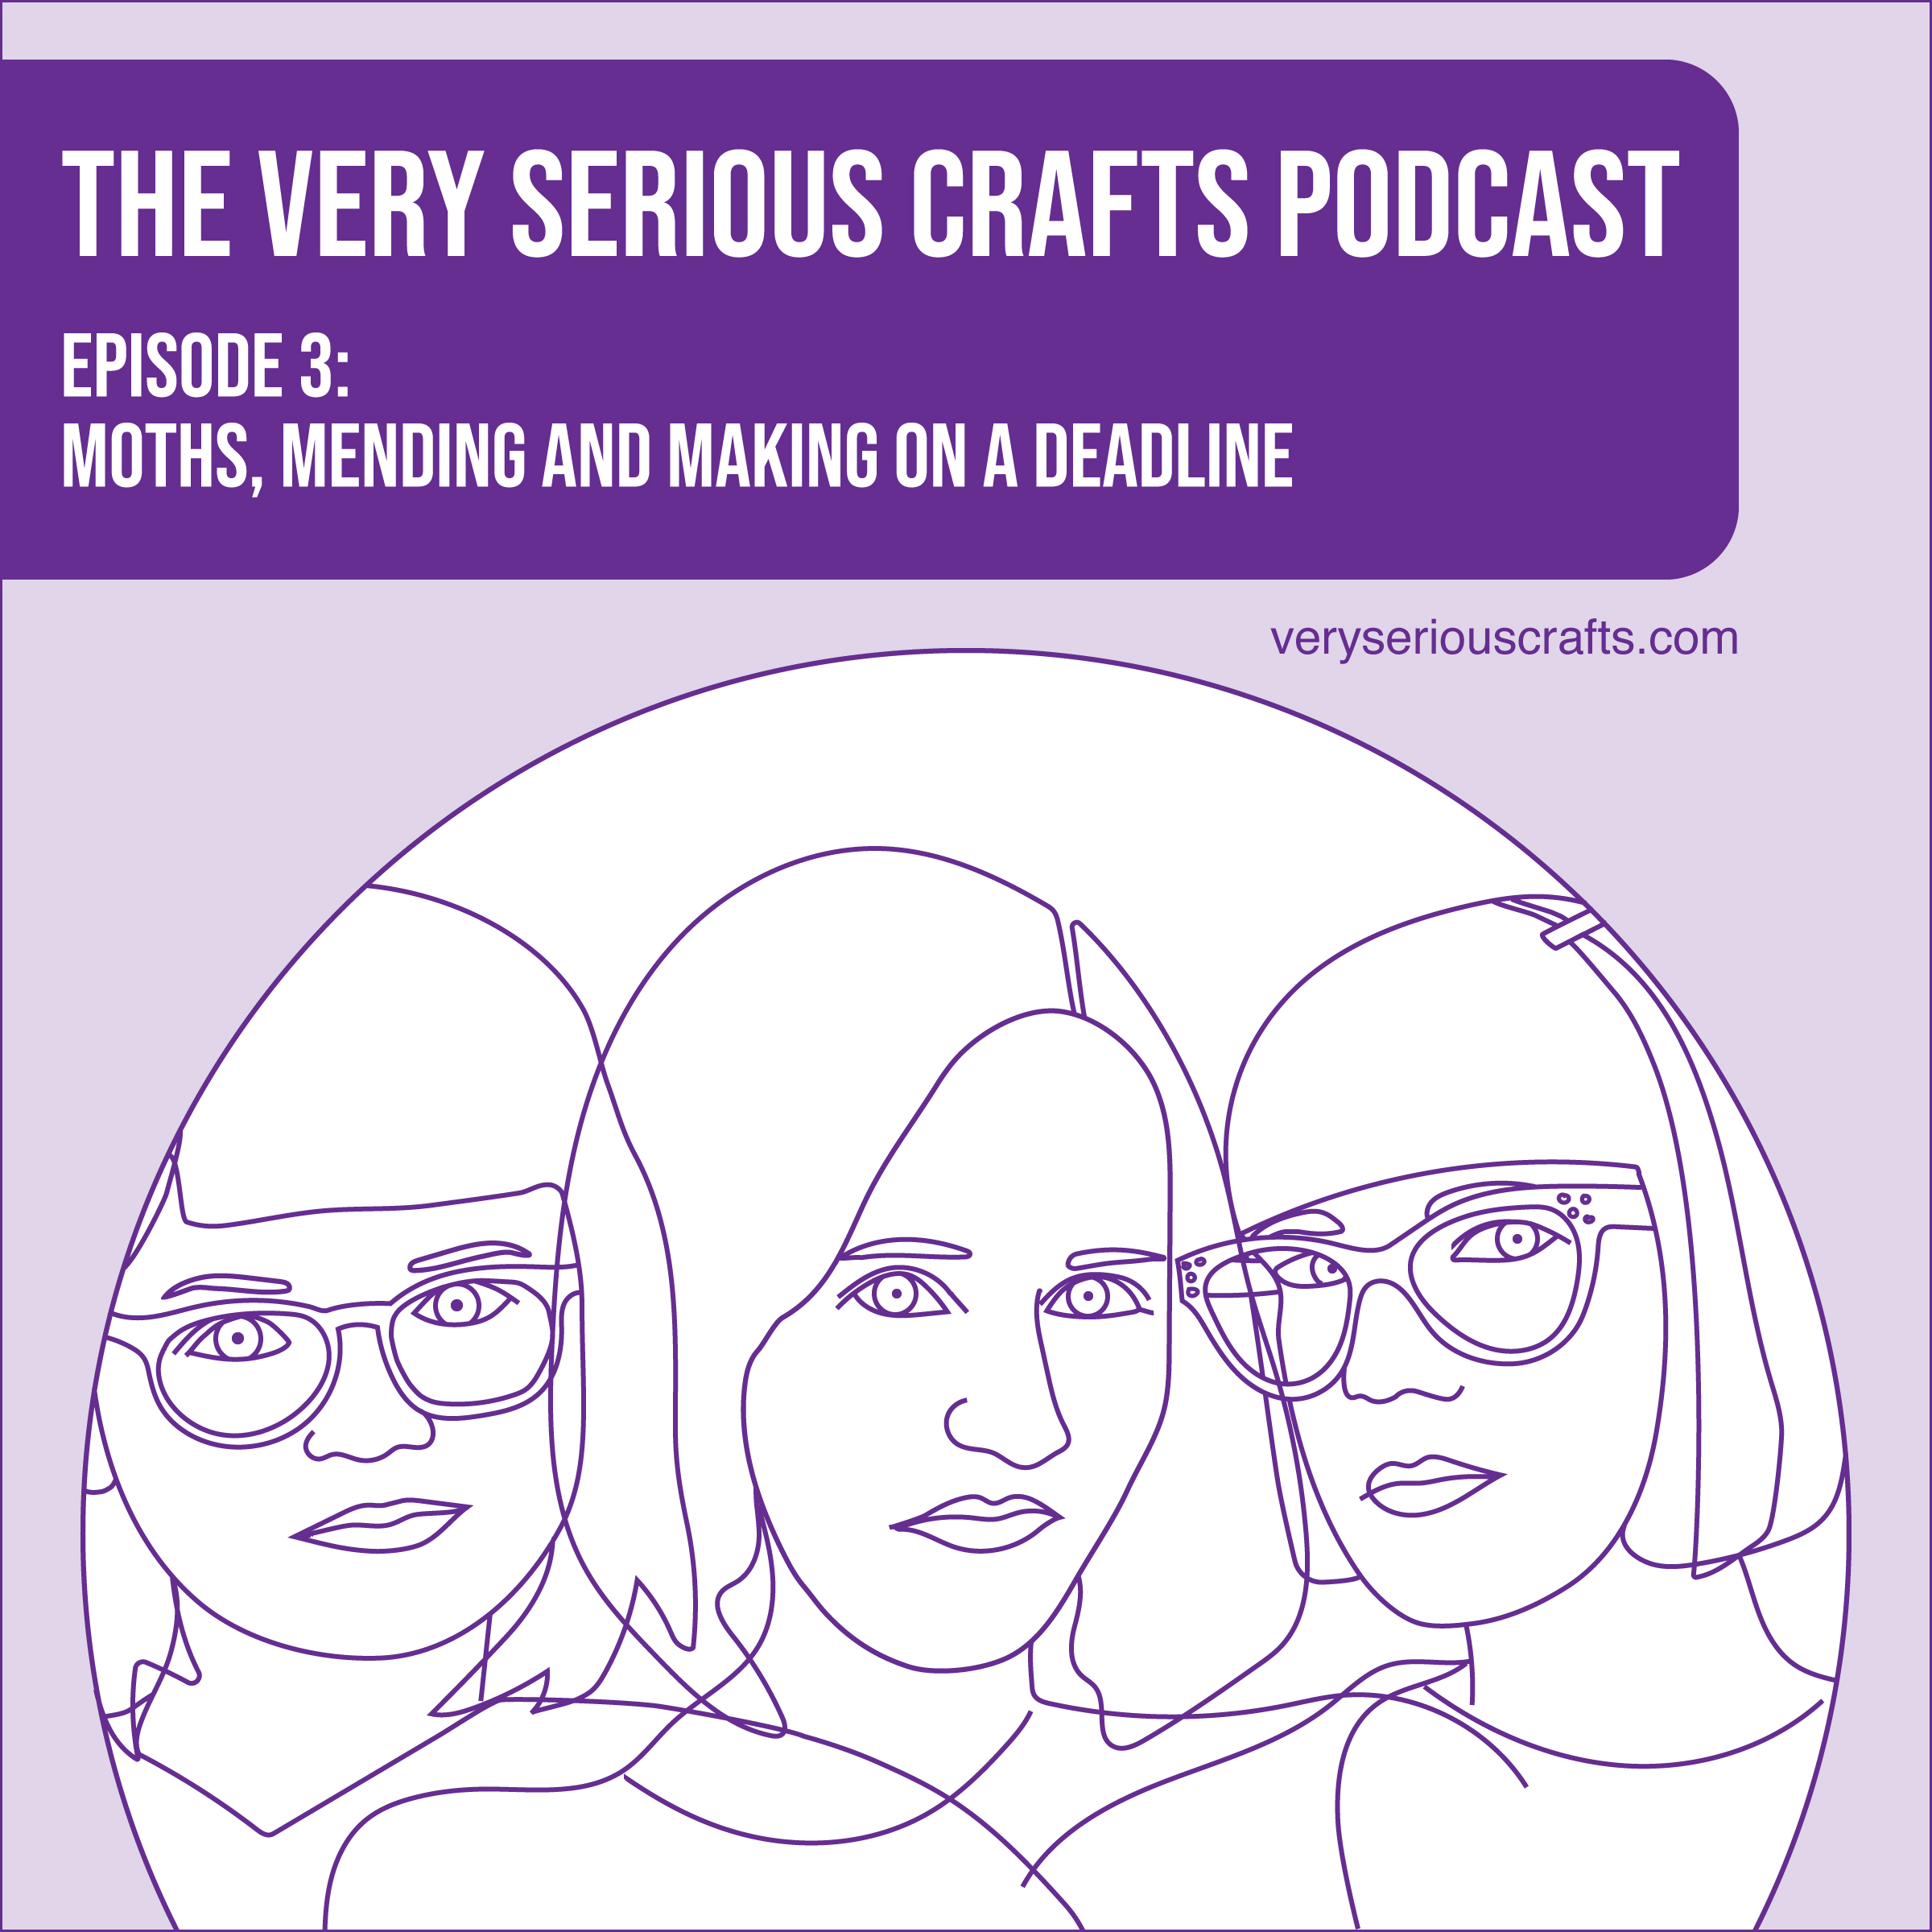 S1E03: Moths, Mending and Making on a Deadline